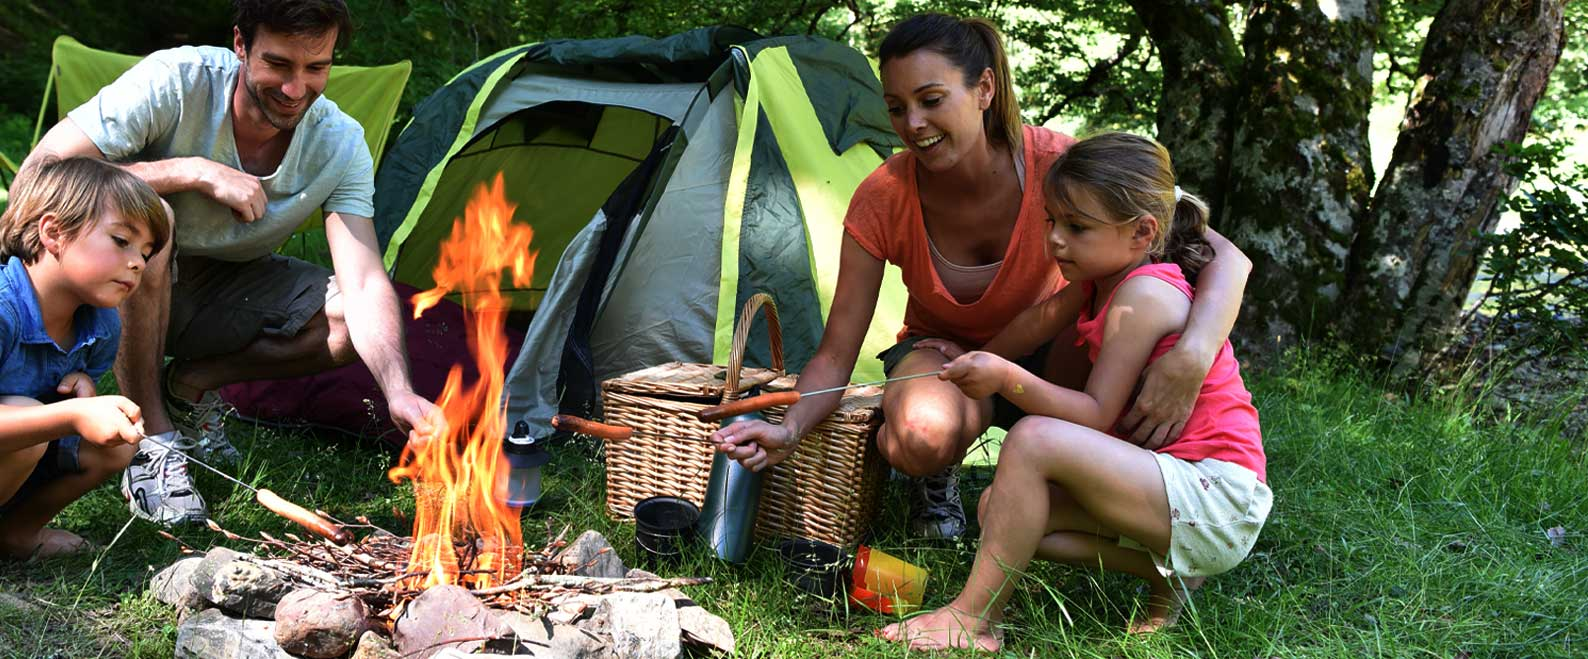 Campfire Cooking Online Course